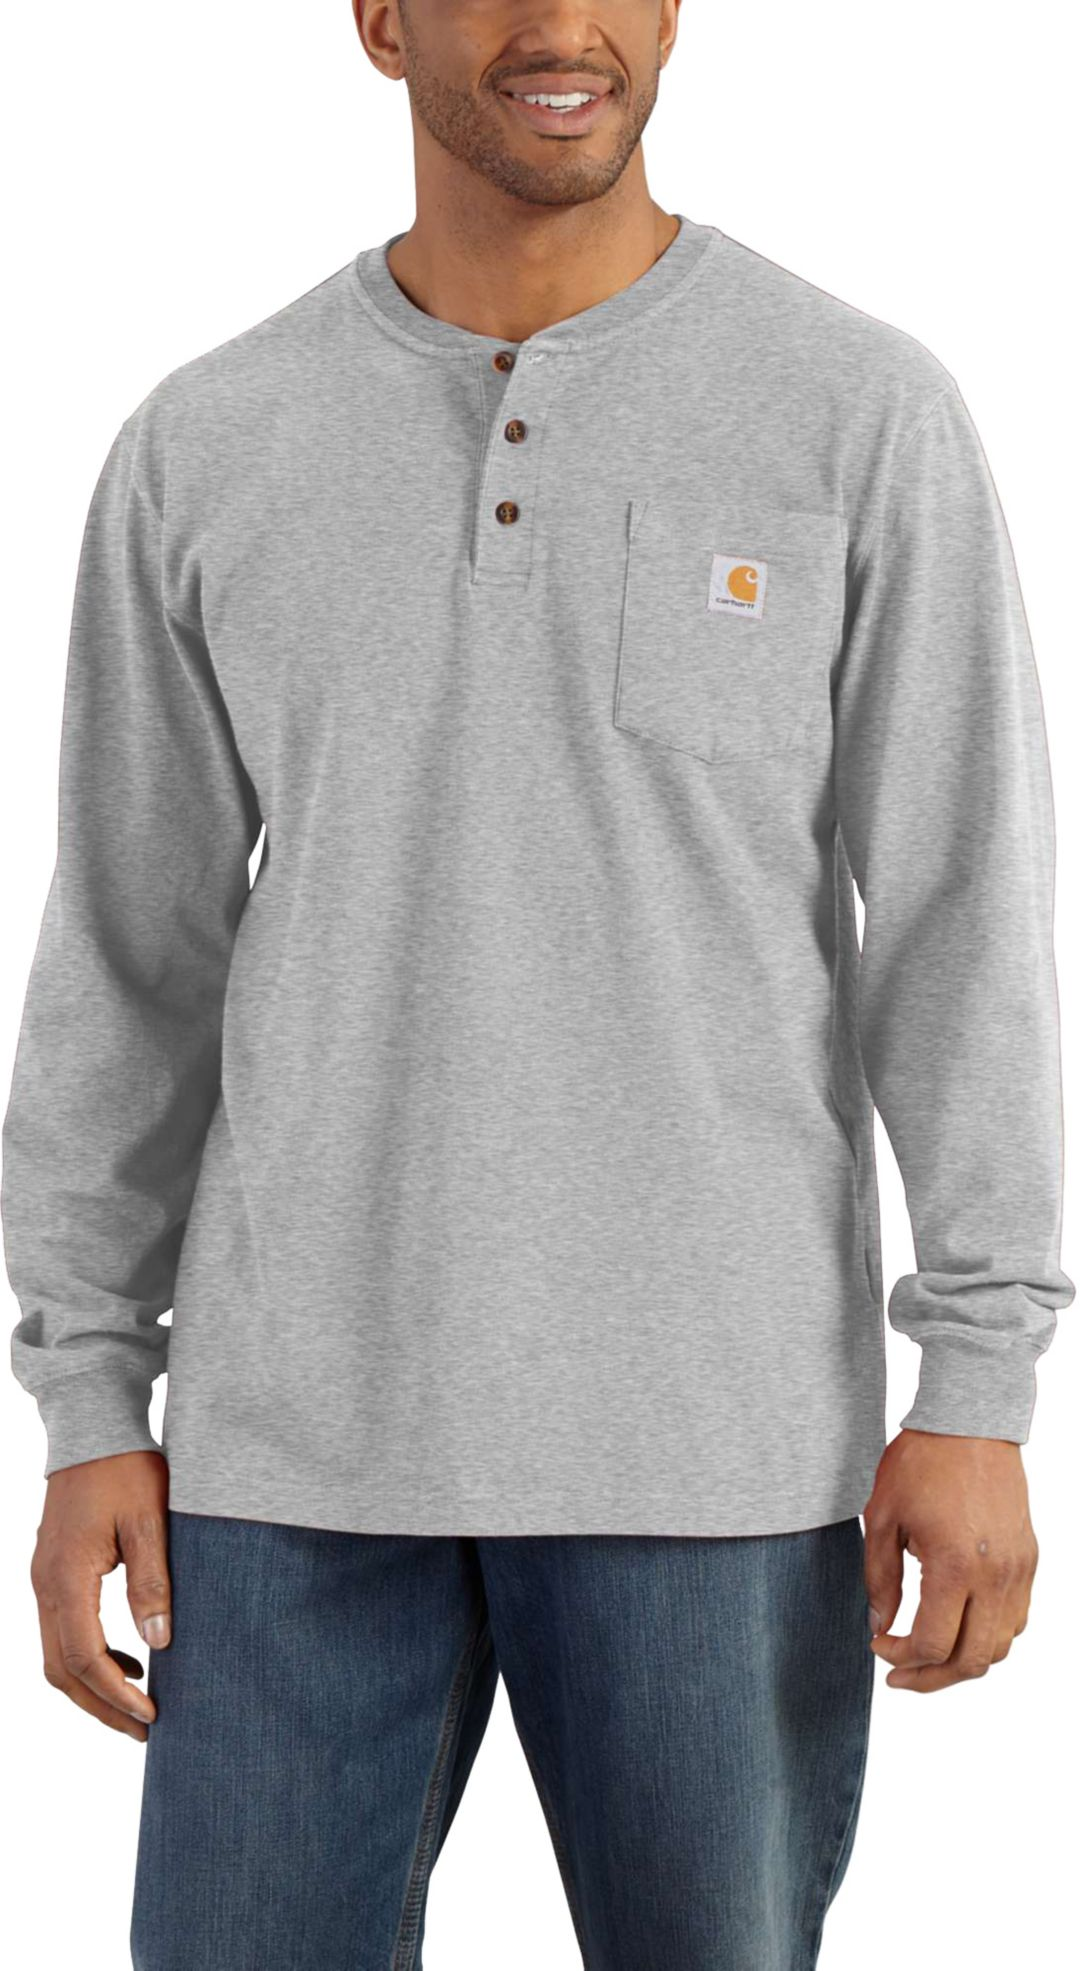 3591bb29 Carhartt Men's Workwear Henley Long Sleeve Shirt - Big & Tall ...